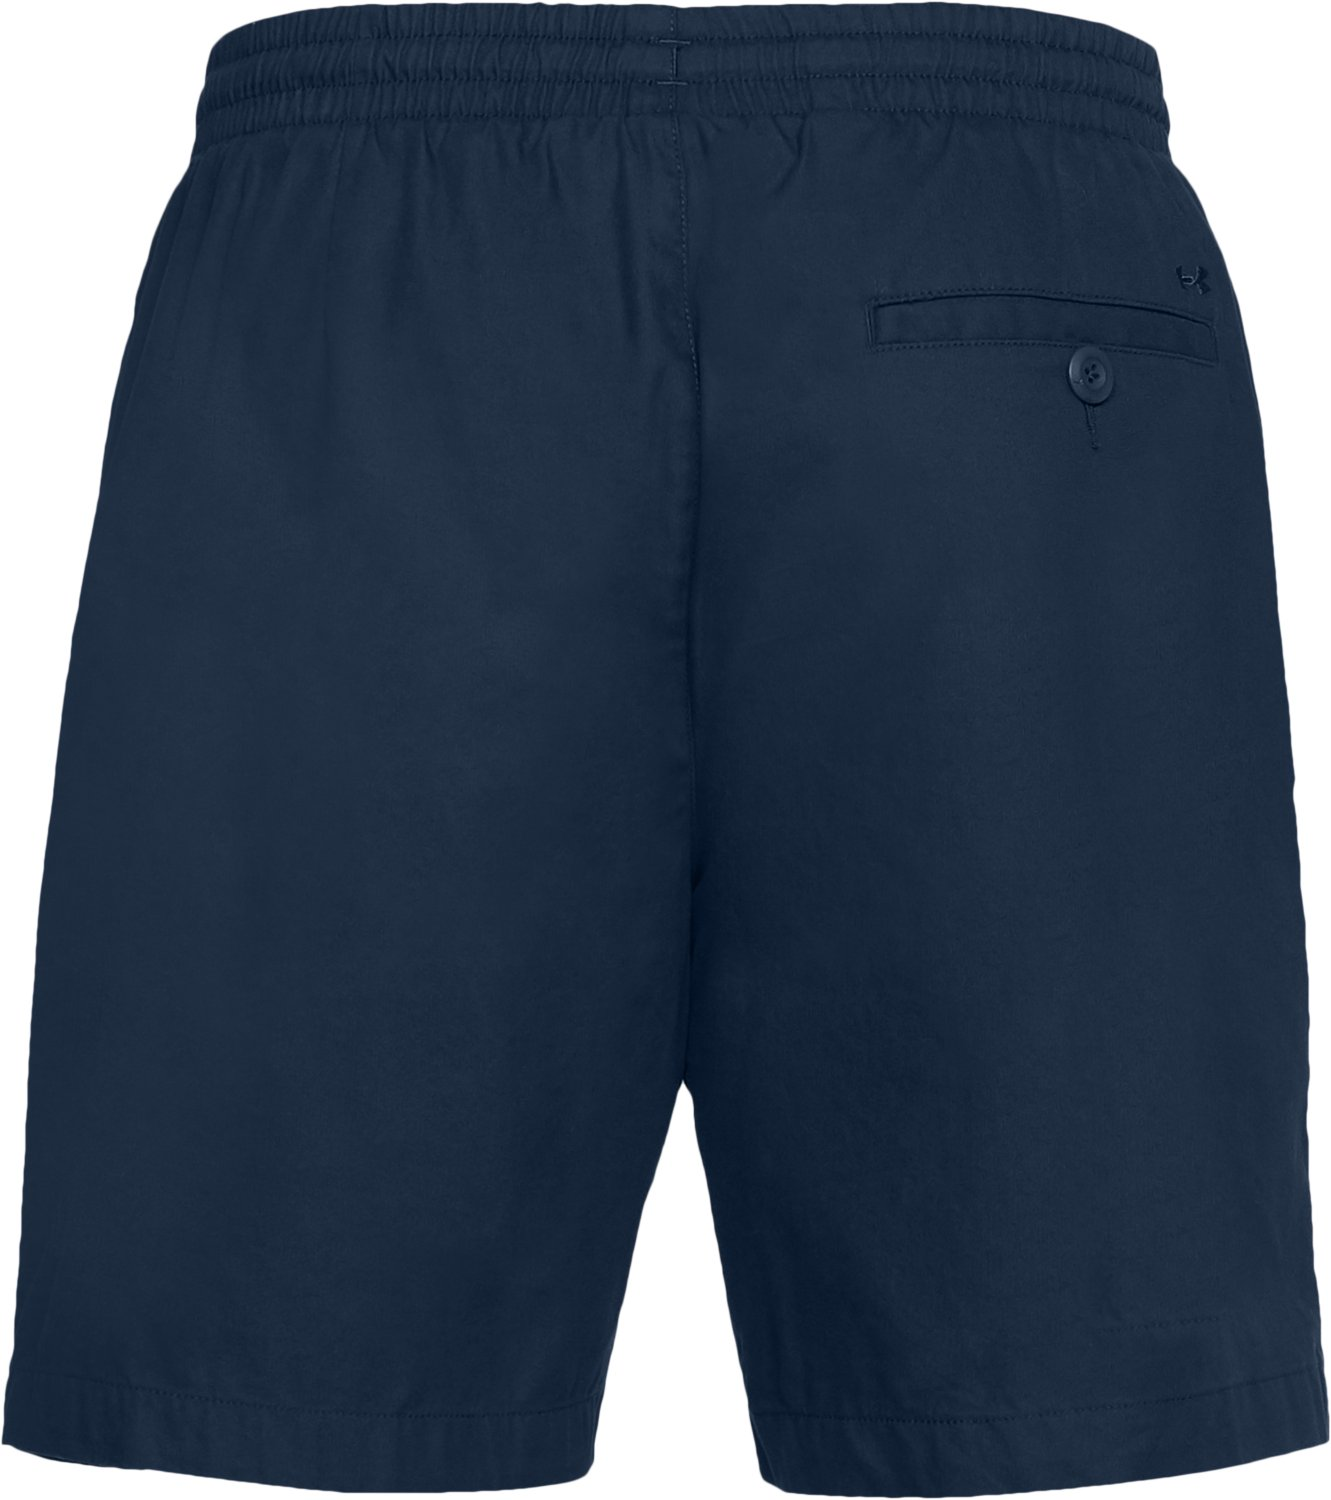 Men's UA Performance Chino Shorts, Academy, undefined